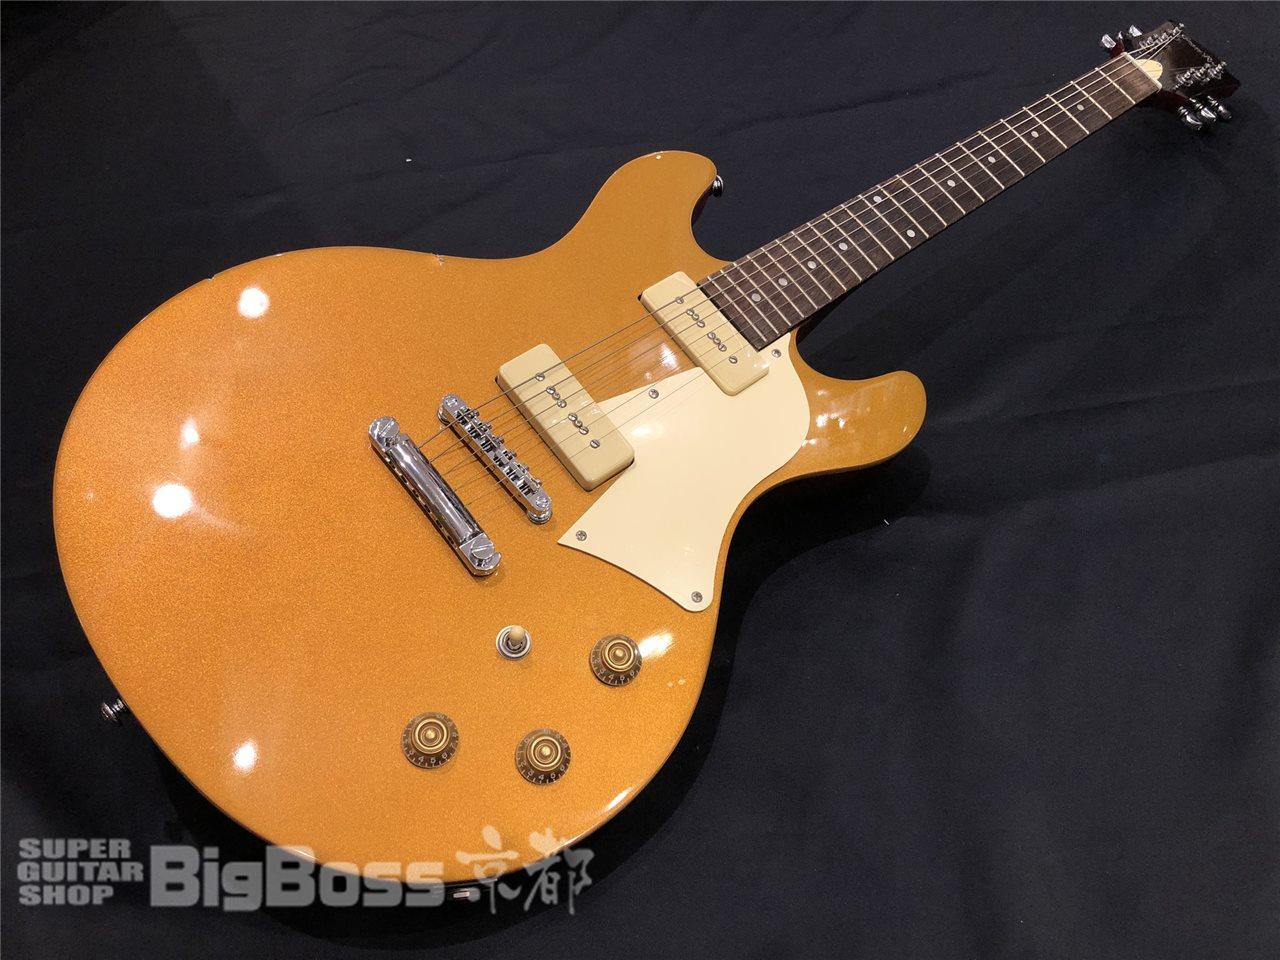 【即納可能/中古商品】Grass Roots (グラスルーツ) G-Bricoluer / Gold Top(9mm Parabellum Bullet 菅原 卓郎モデル) 京都店